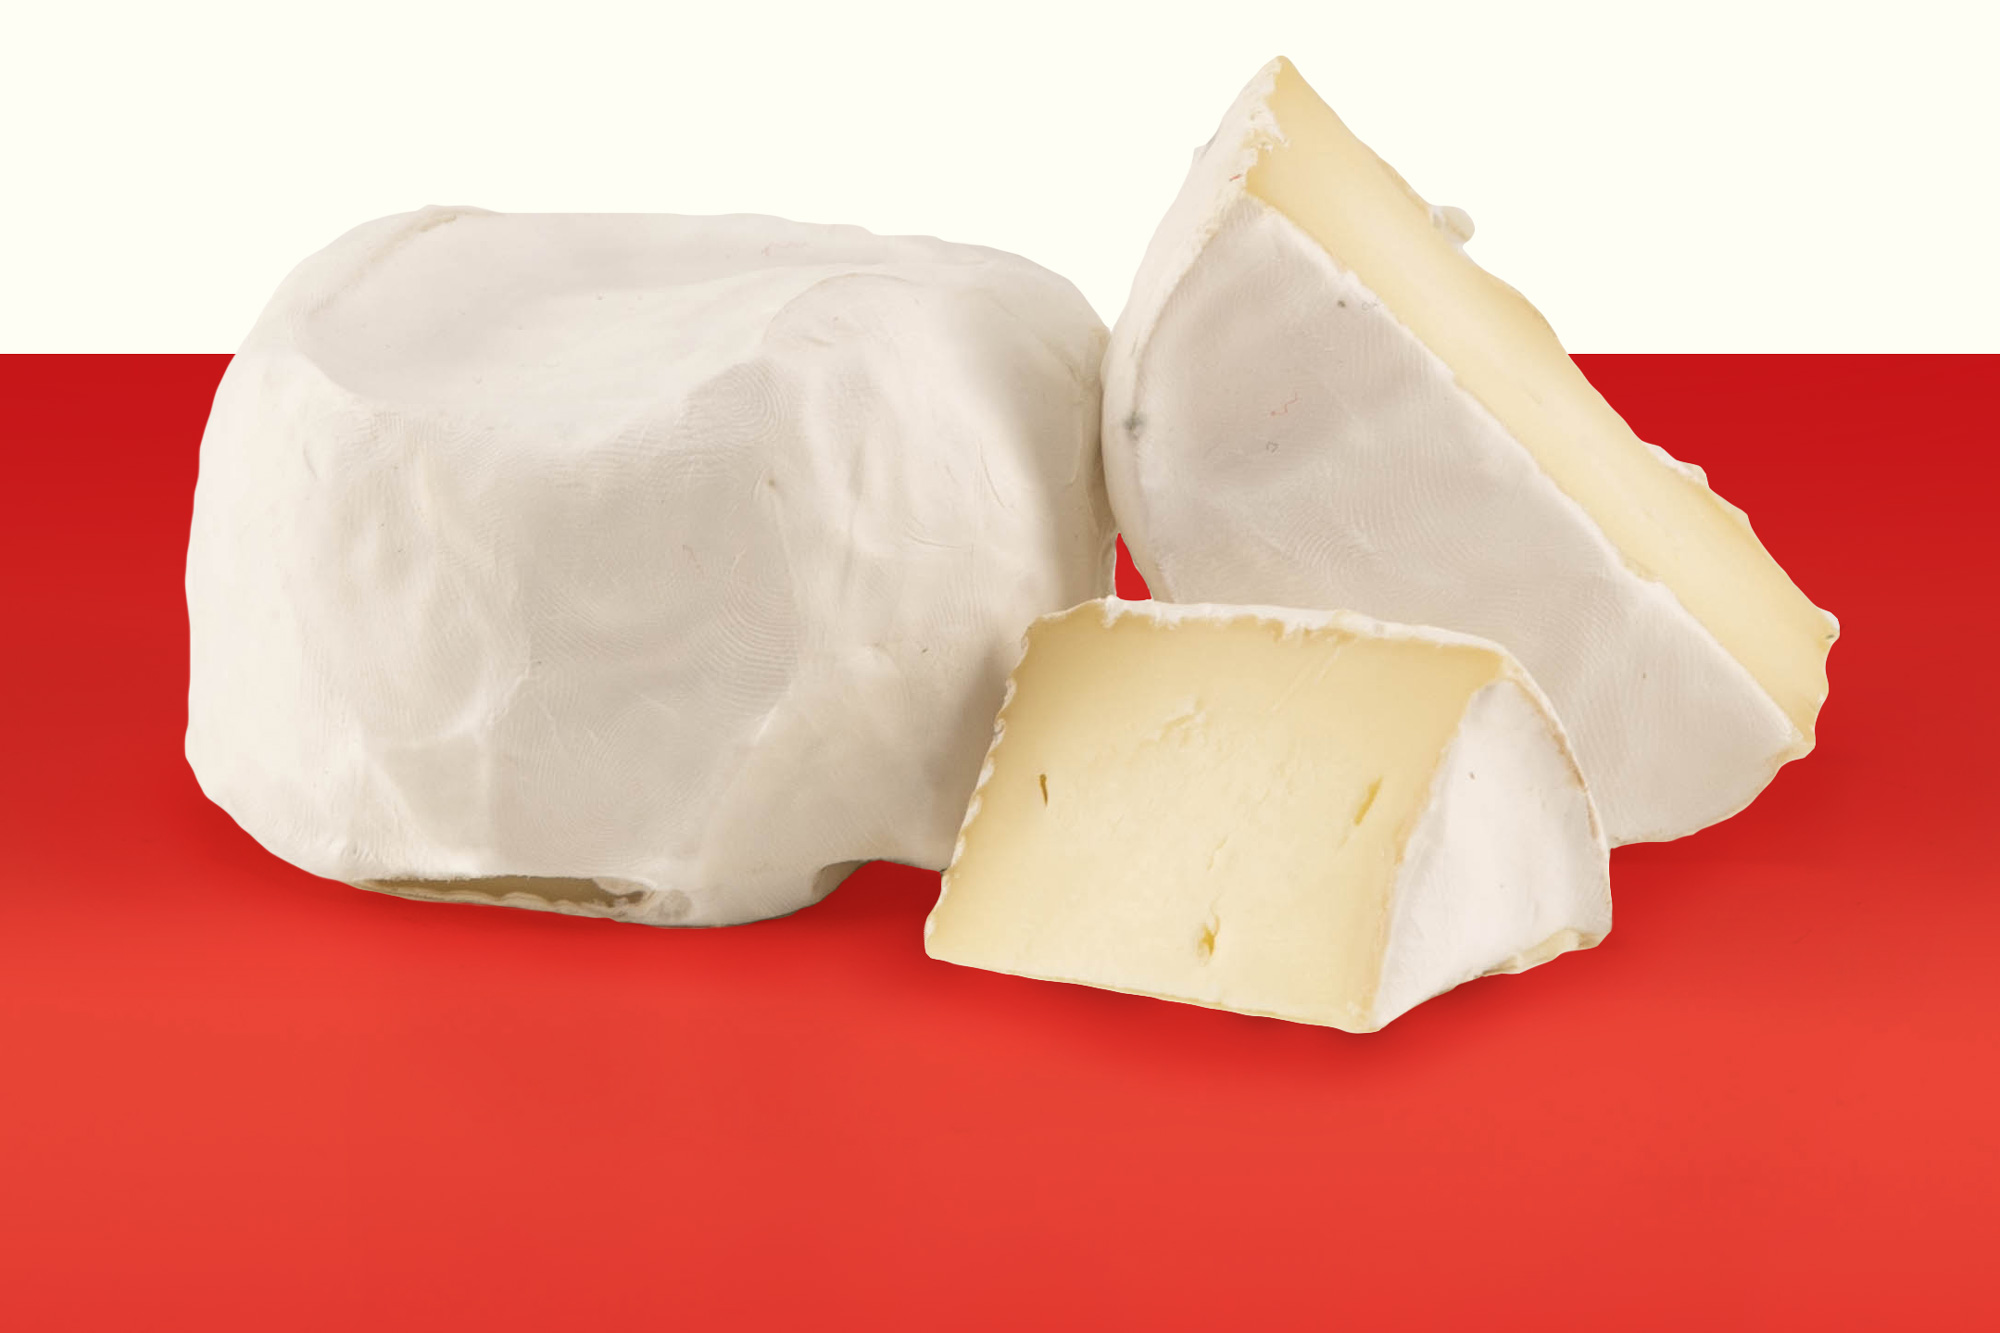 Misty River - This Camembert-style cheese is a lovely little white creamy pillow of cheese has earthy, flavors with a slight finish of mushroom flavors. This cheese pairs beautifully with sweet fruits and jams.Ingredients: Pasteurized Local Jersey Cow Milk, Salt, Cultures & Enzymes